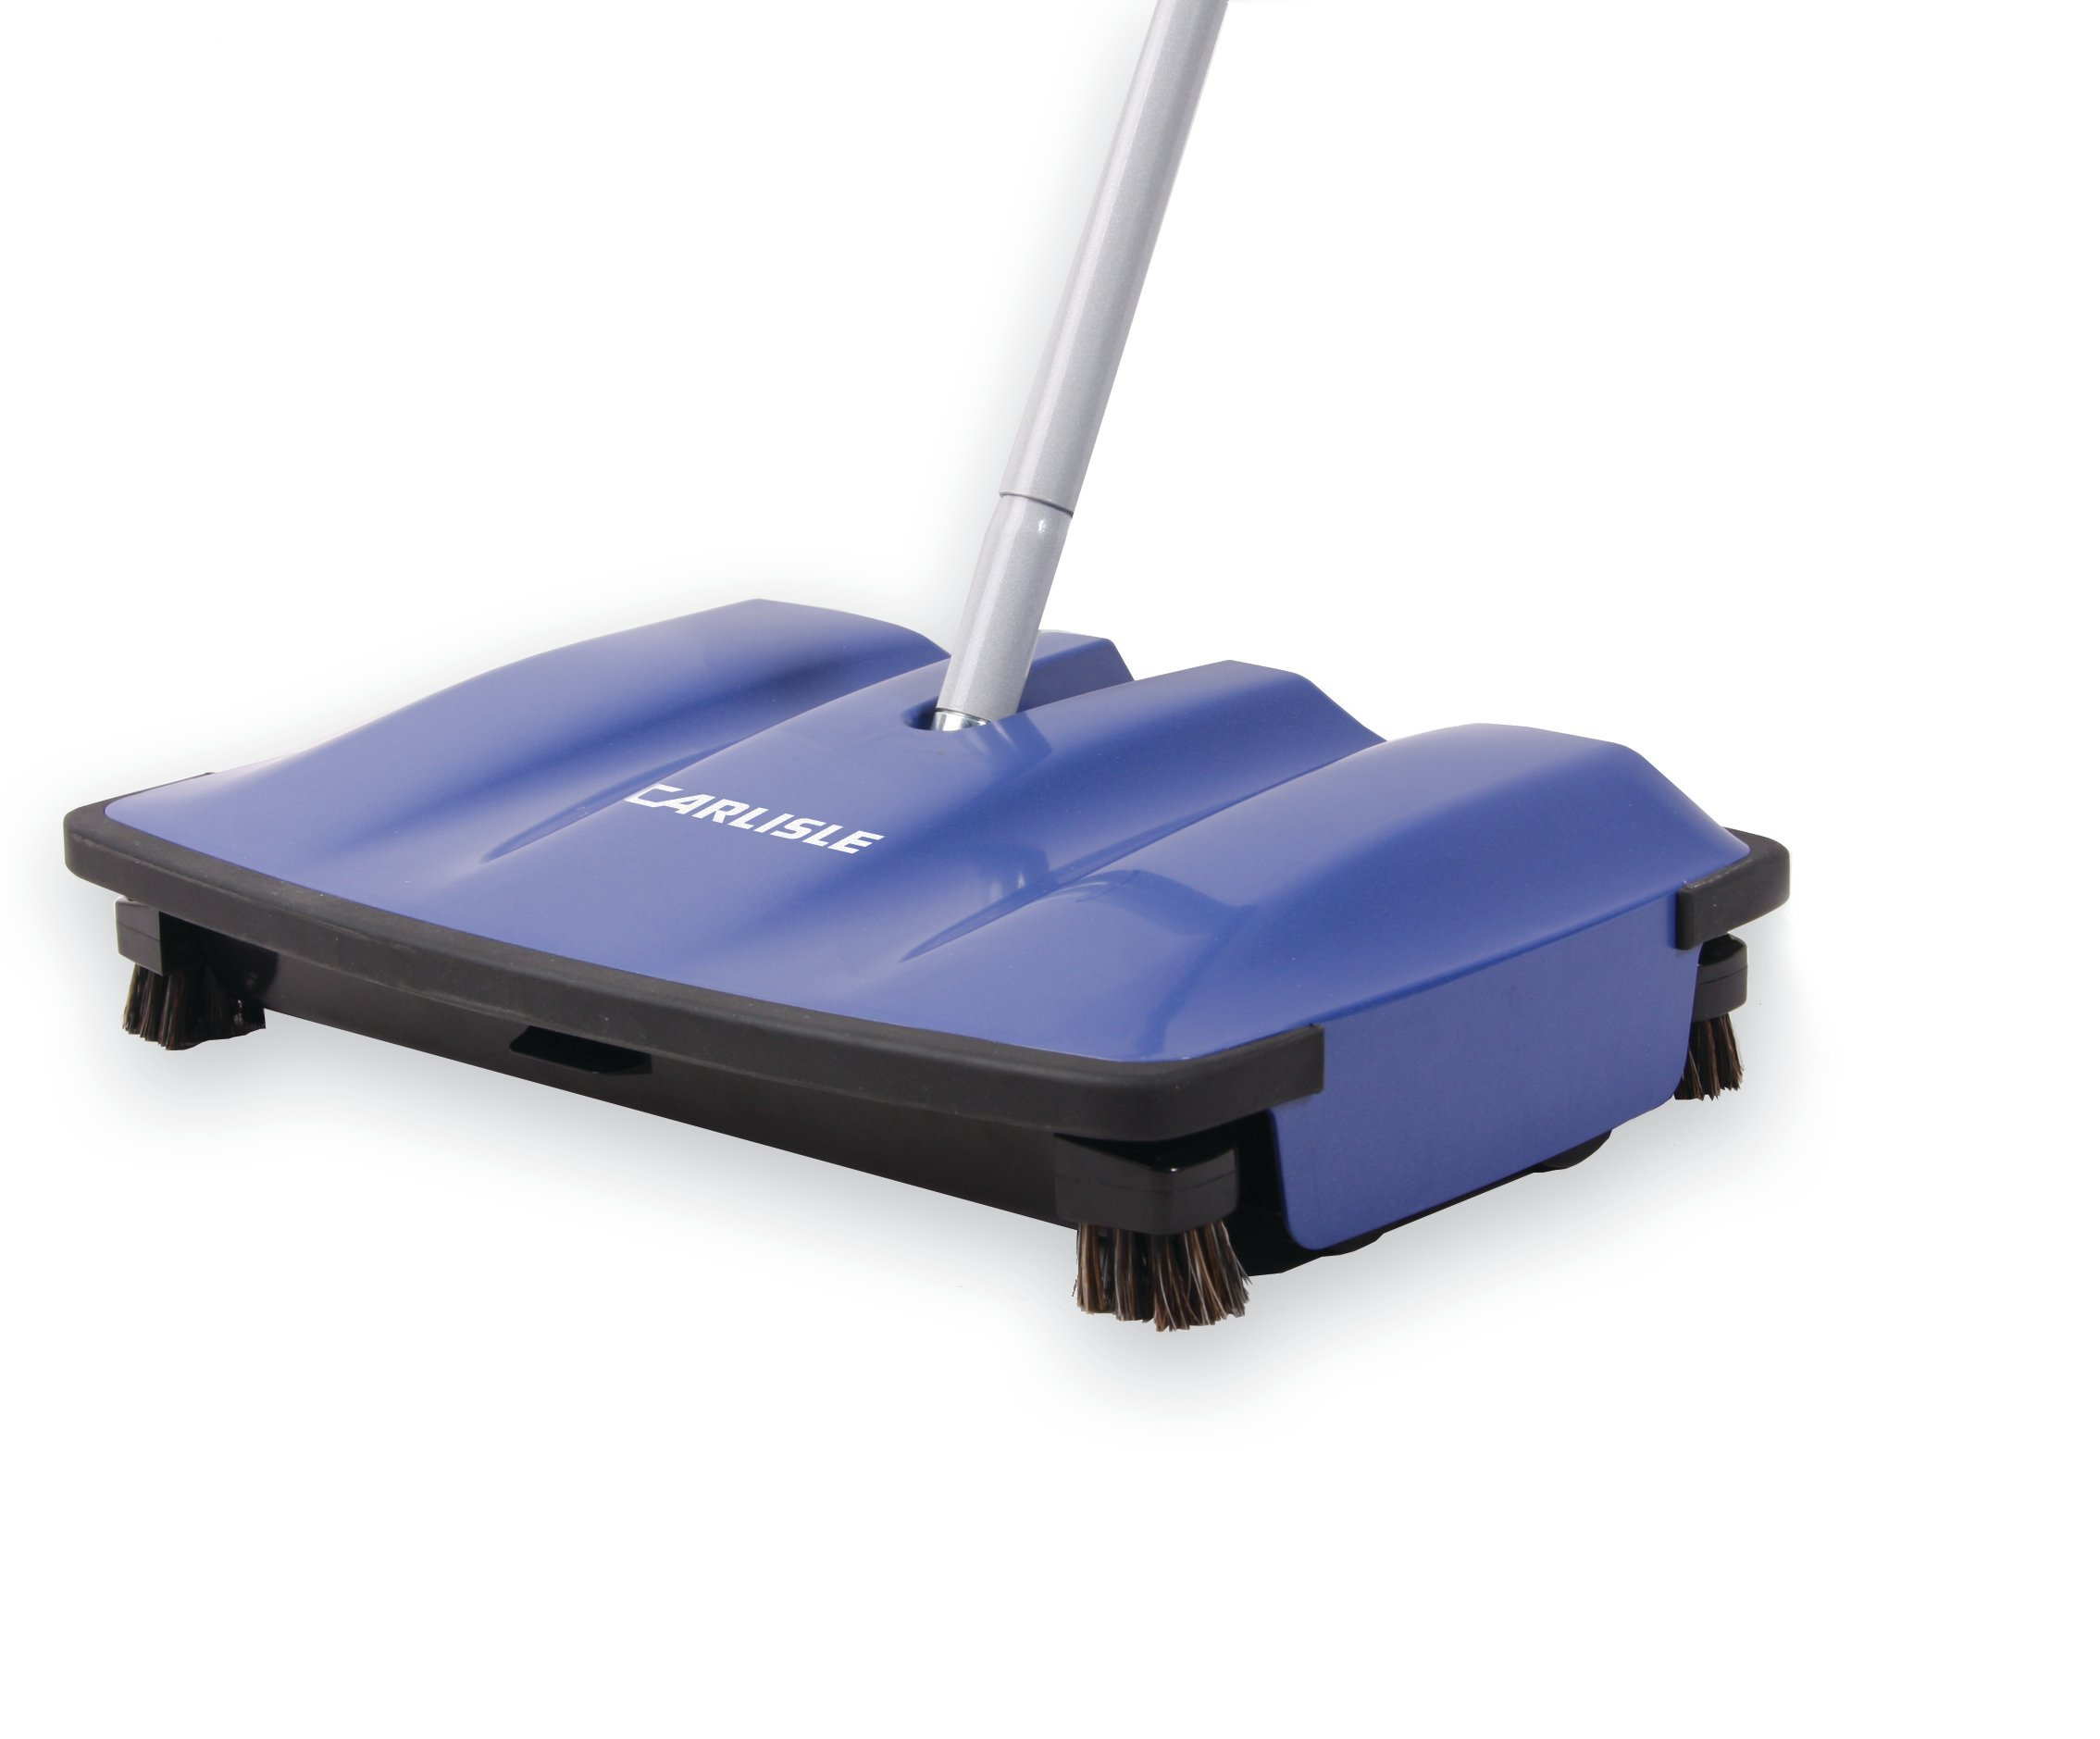 Carlisle 3640014 Duo-Sweeper ABS Multi-Surface Floor Sweeper, 1/2'' Length Brush, 8'' Length x 12'' Width x 2-1/2'' Height, Blue by Carlisle